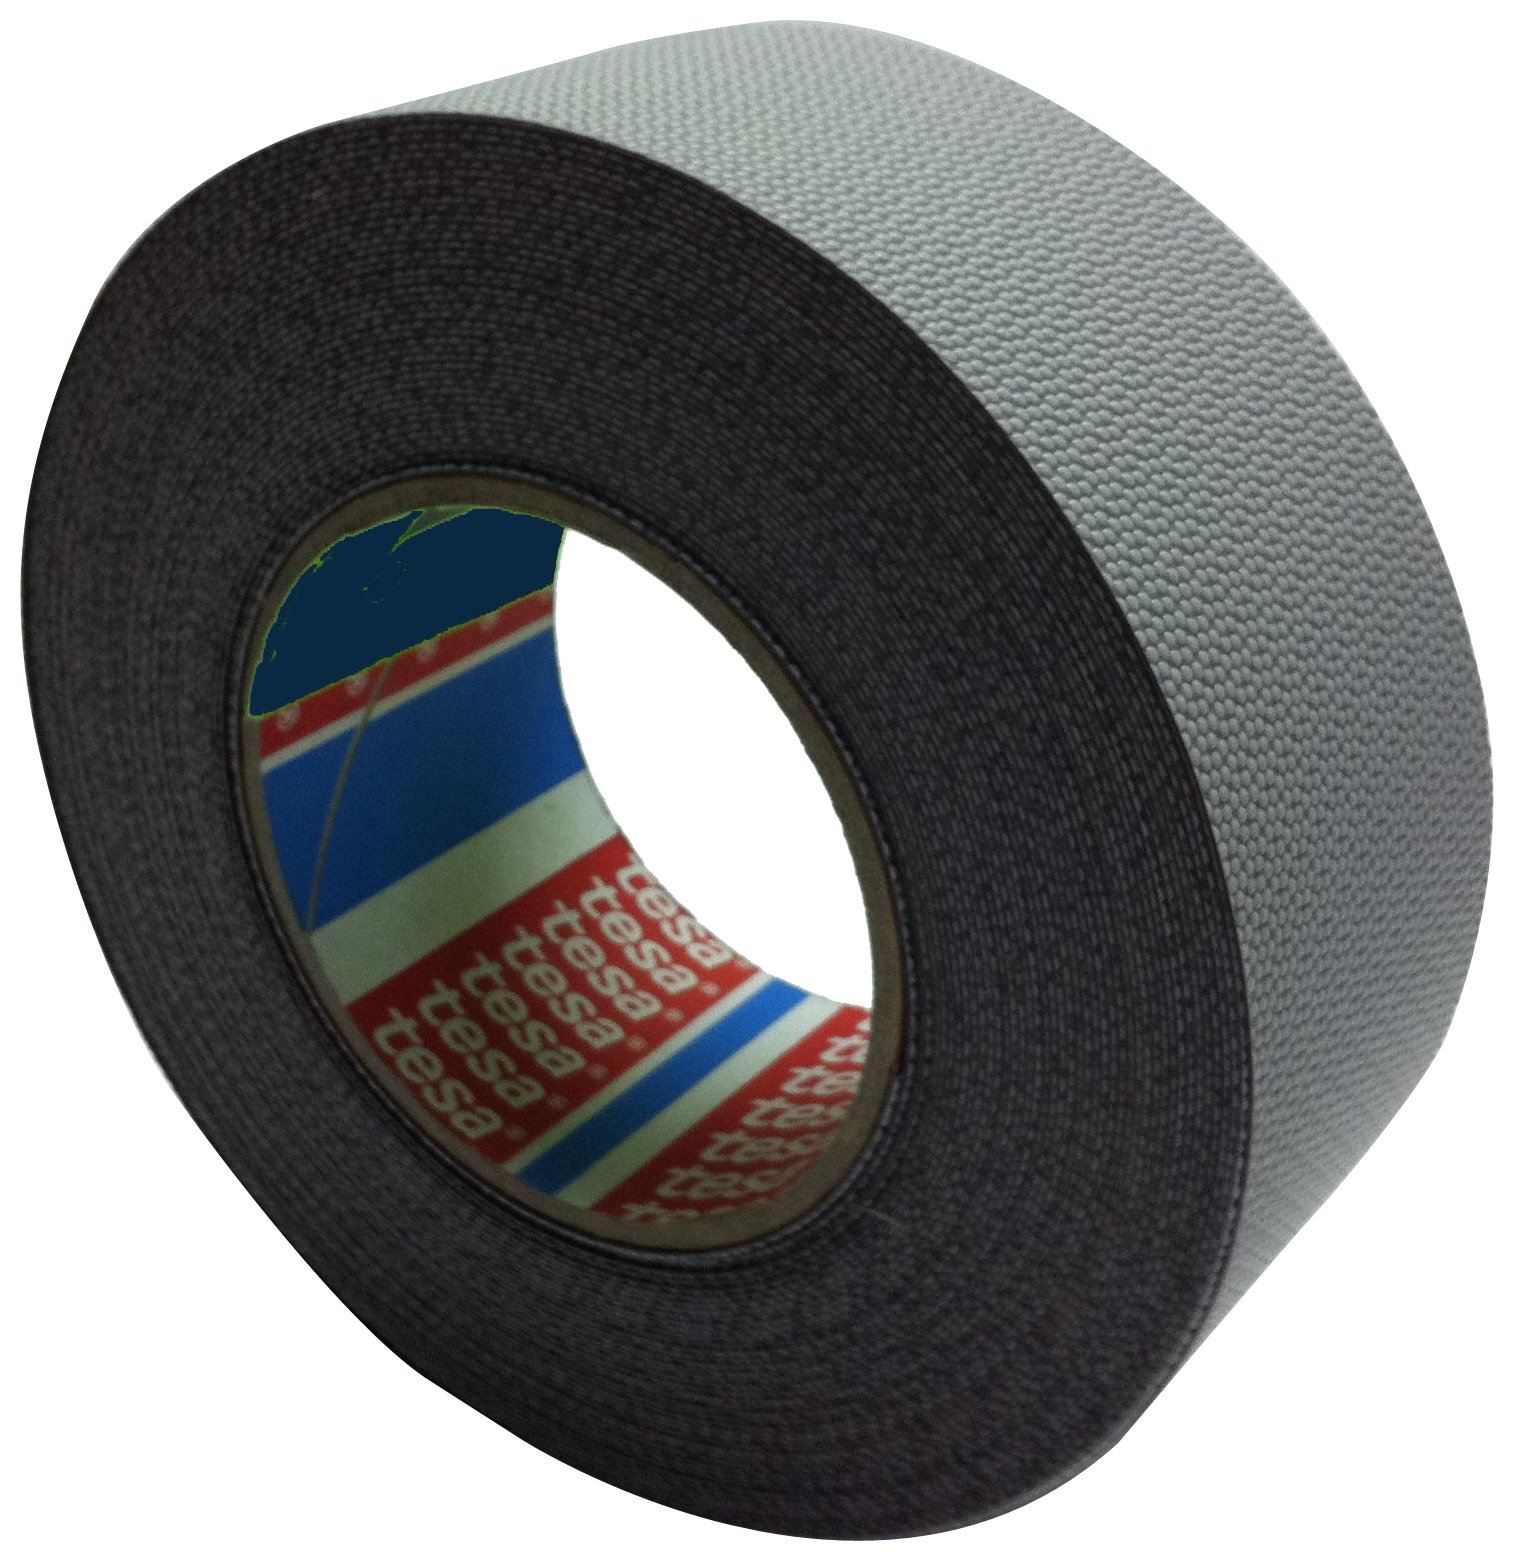 Tesa 4863 Grip Tape, 2'' Width, 0.025'' Thick, 9 yd Length (Pack of 1)